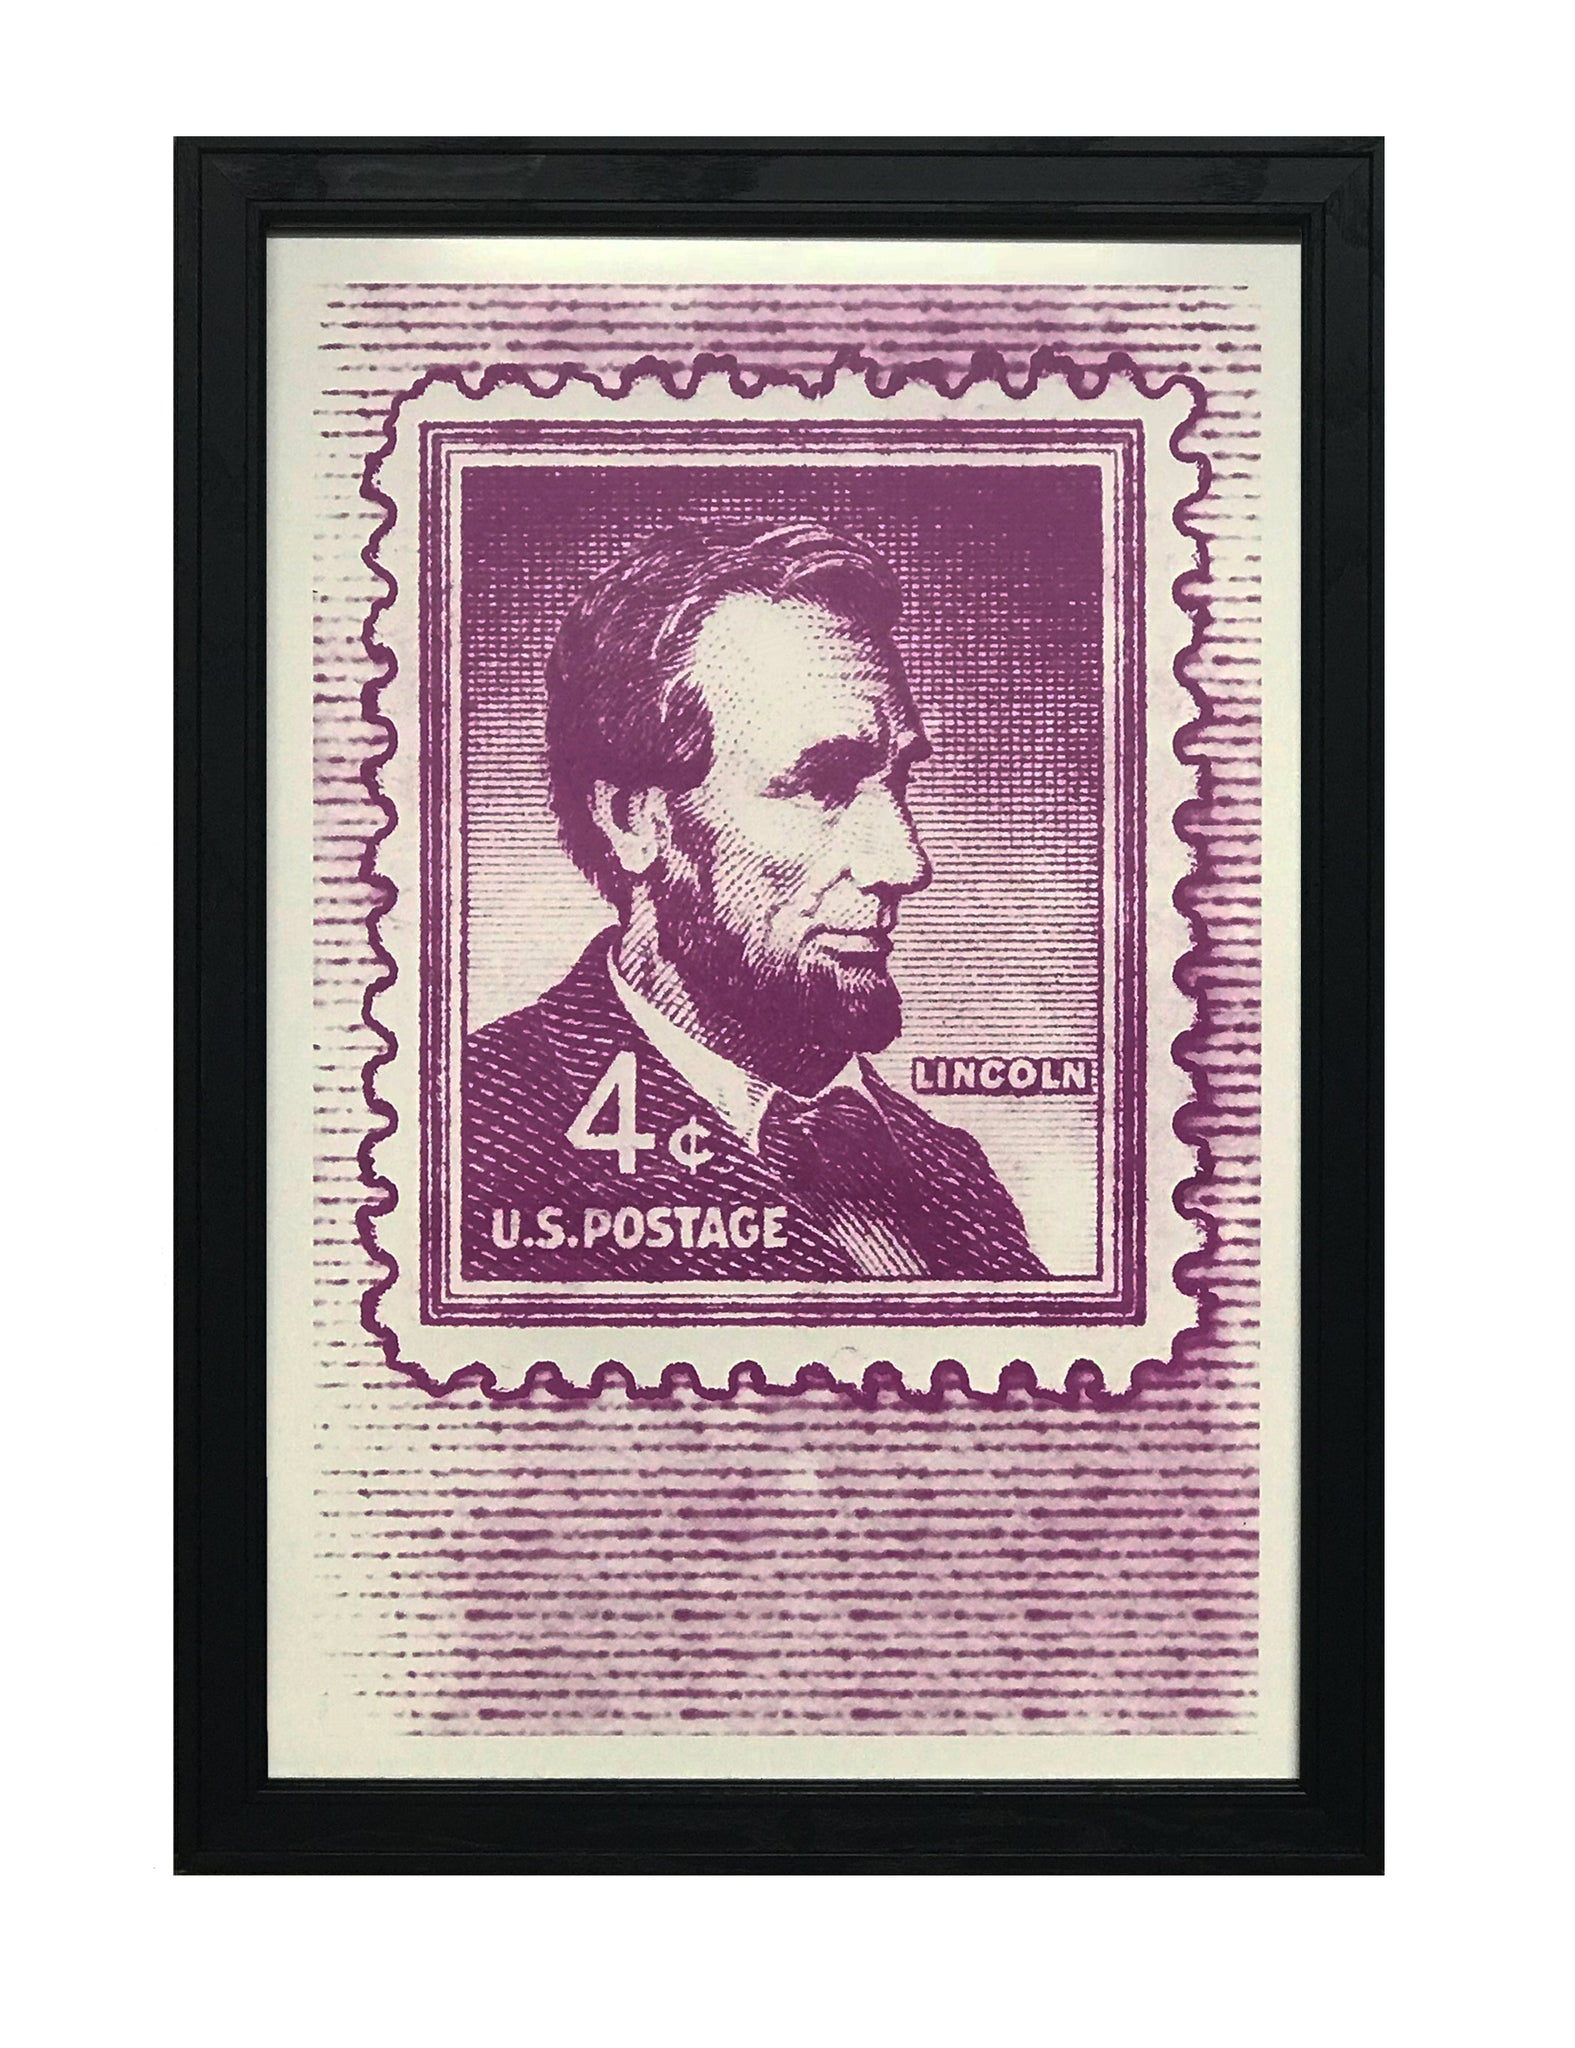 image relating to Printable Postage Stamps named Abraham Lincoln Poster - 1954 US Postage Stamp Artwork - 13x19